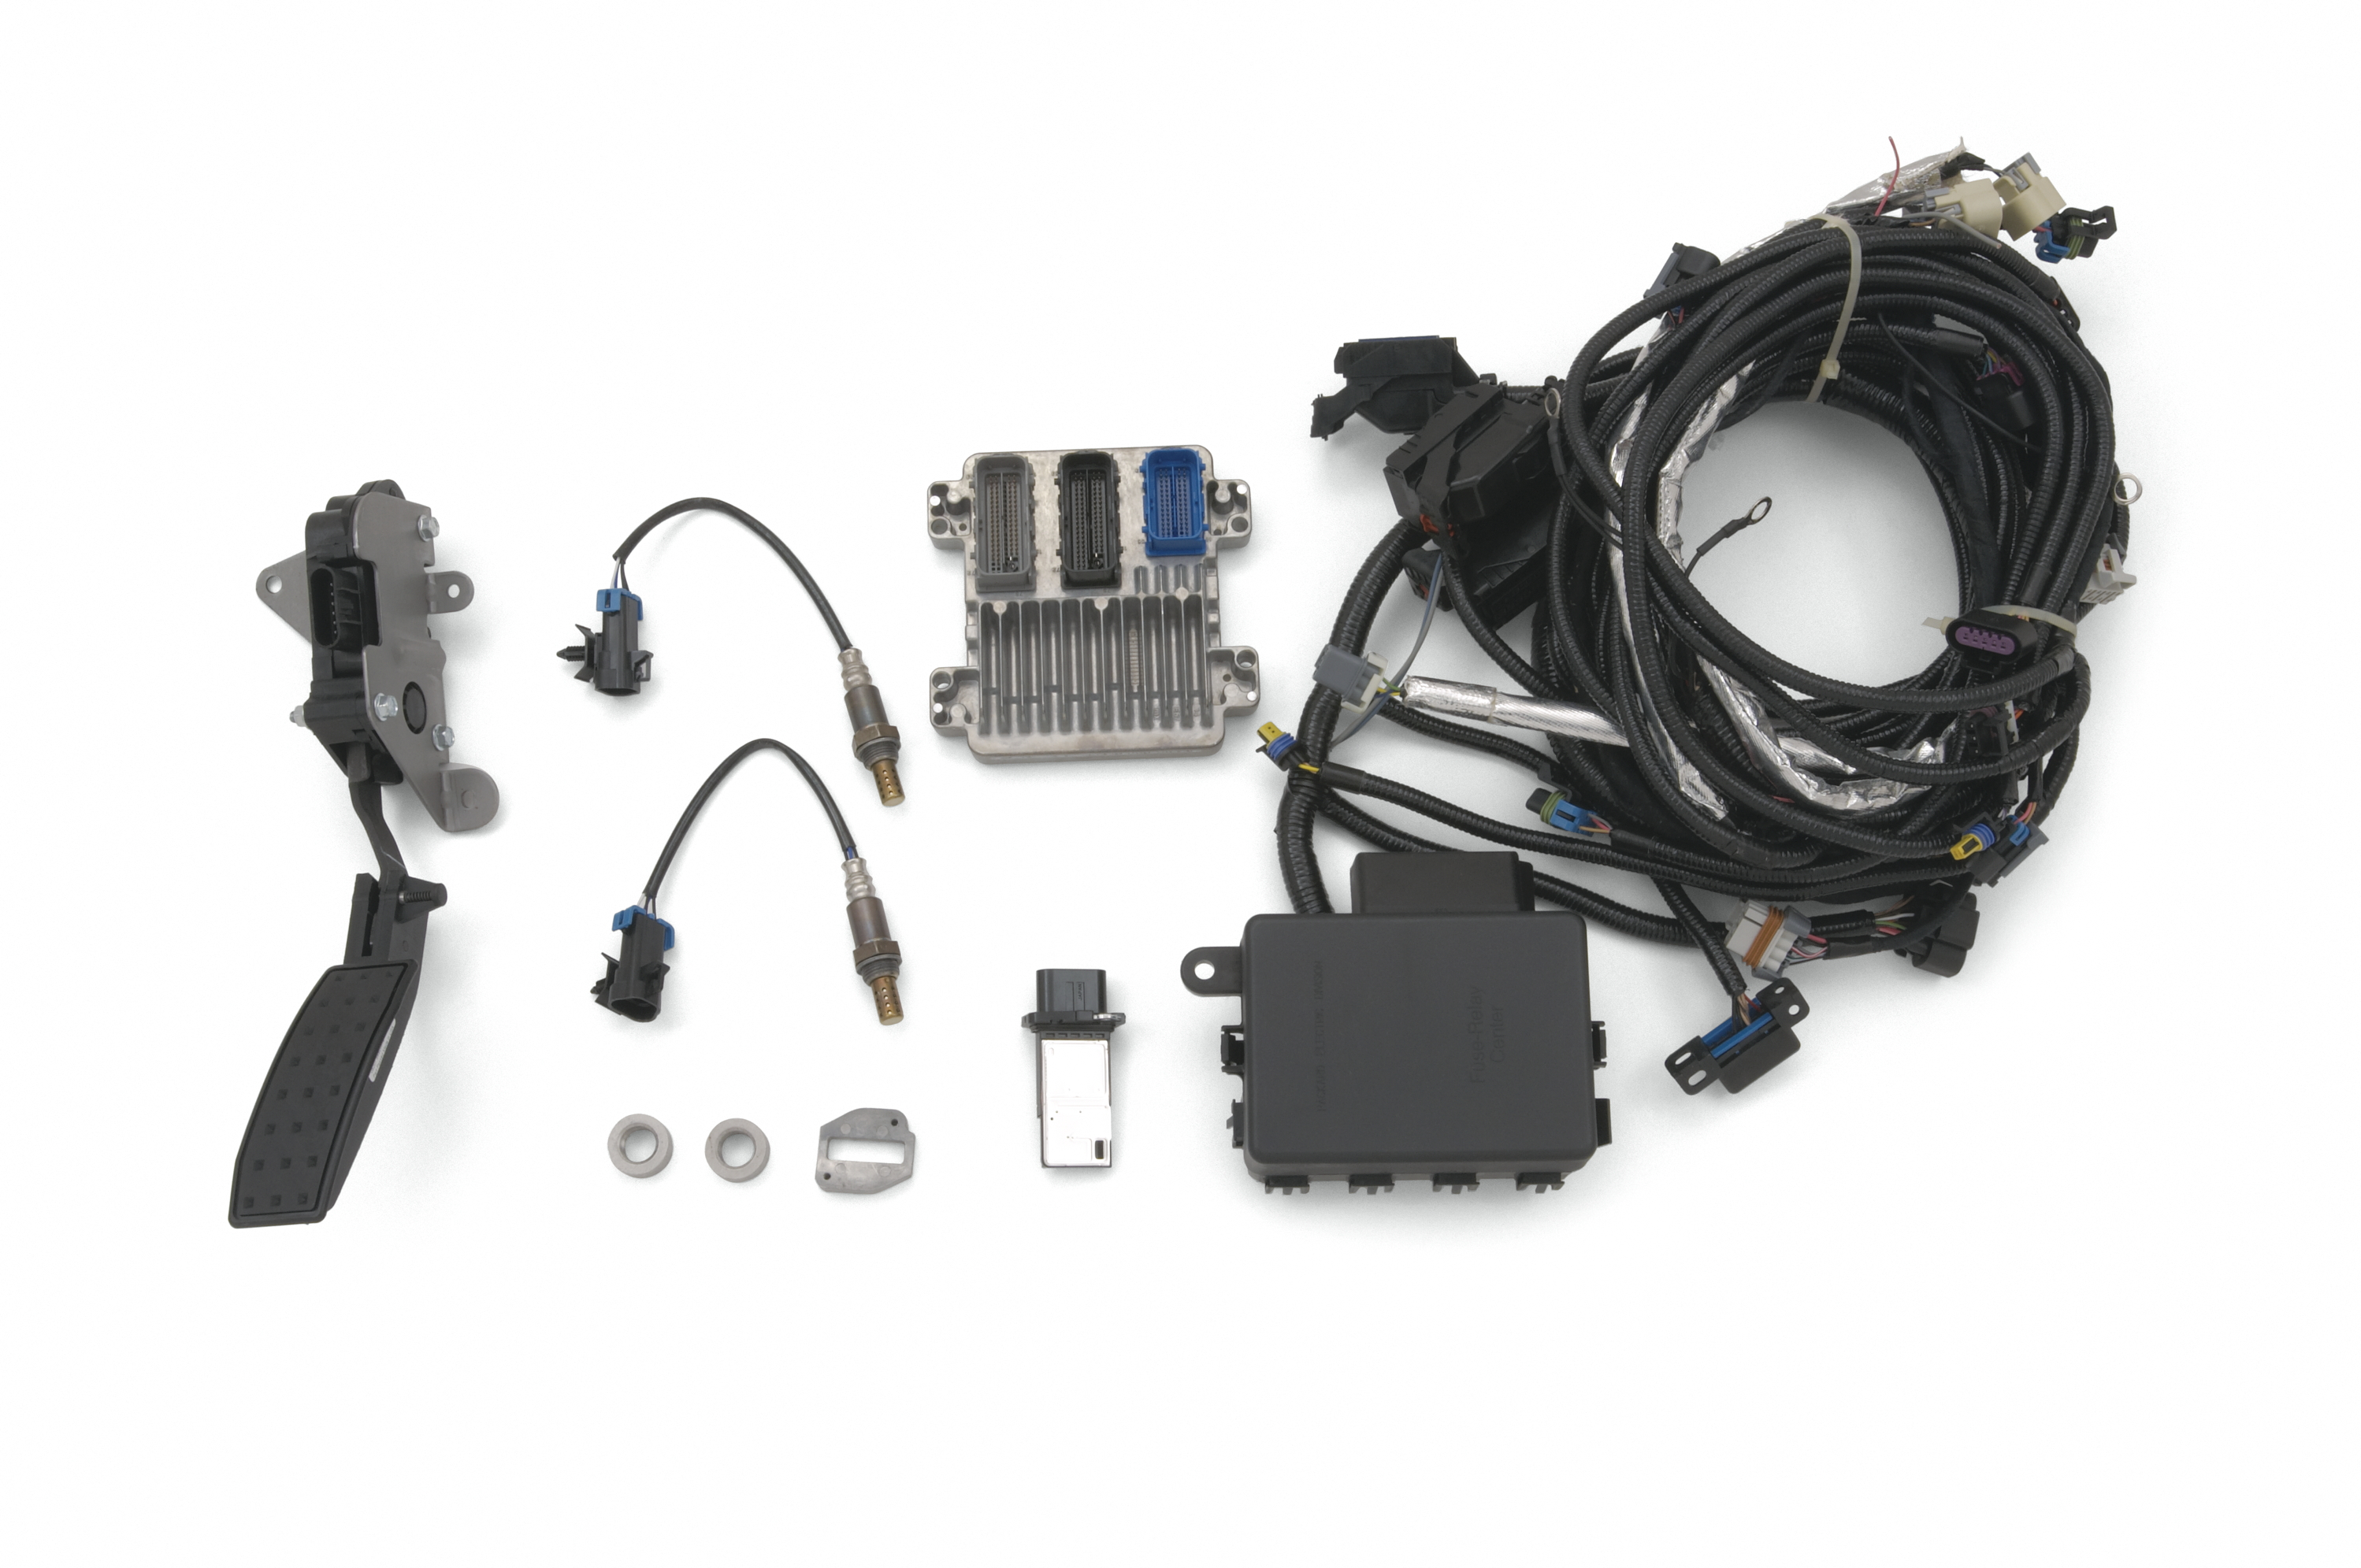 2011 Chevrolet PerfParts 001 chevrolet performance releases lsa controller kit painless wiring harness ls3 at bayanpartner.co